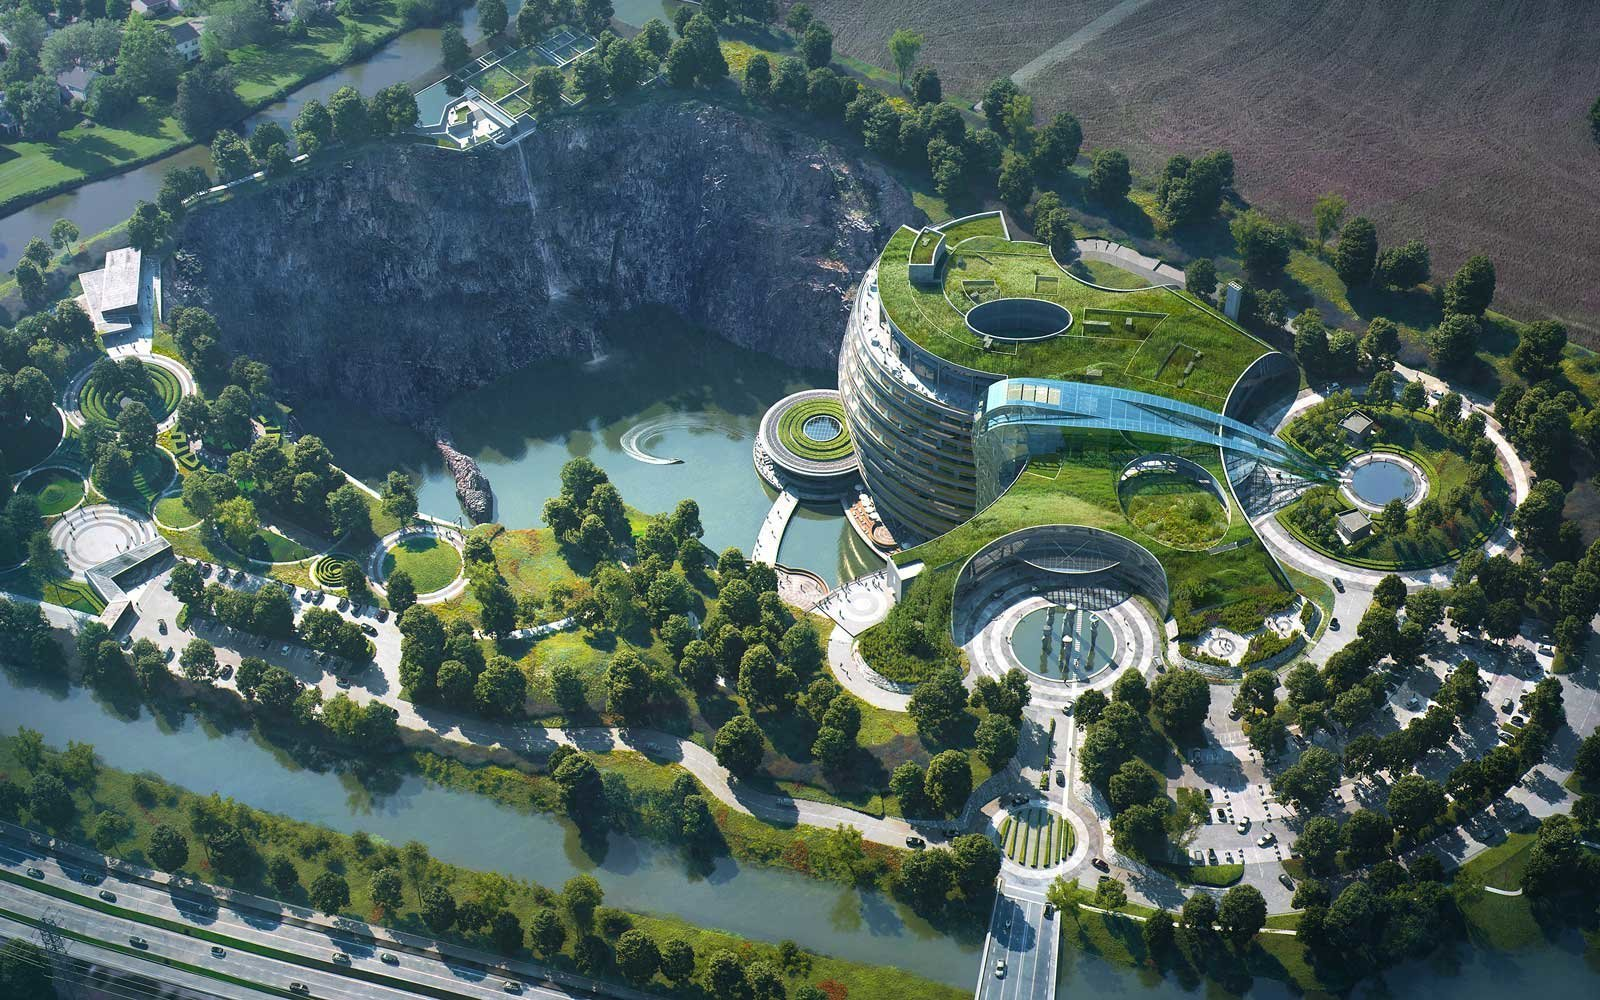 China Is Opening the 'World's First Underground Hotel' Inside an Abandoned Quarry